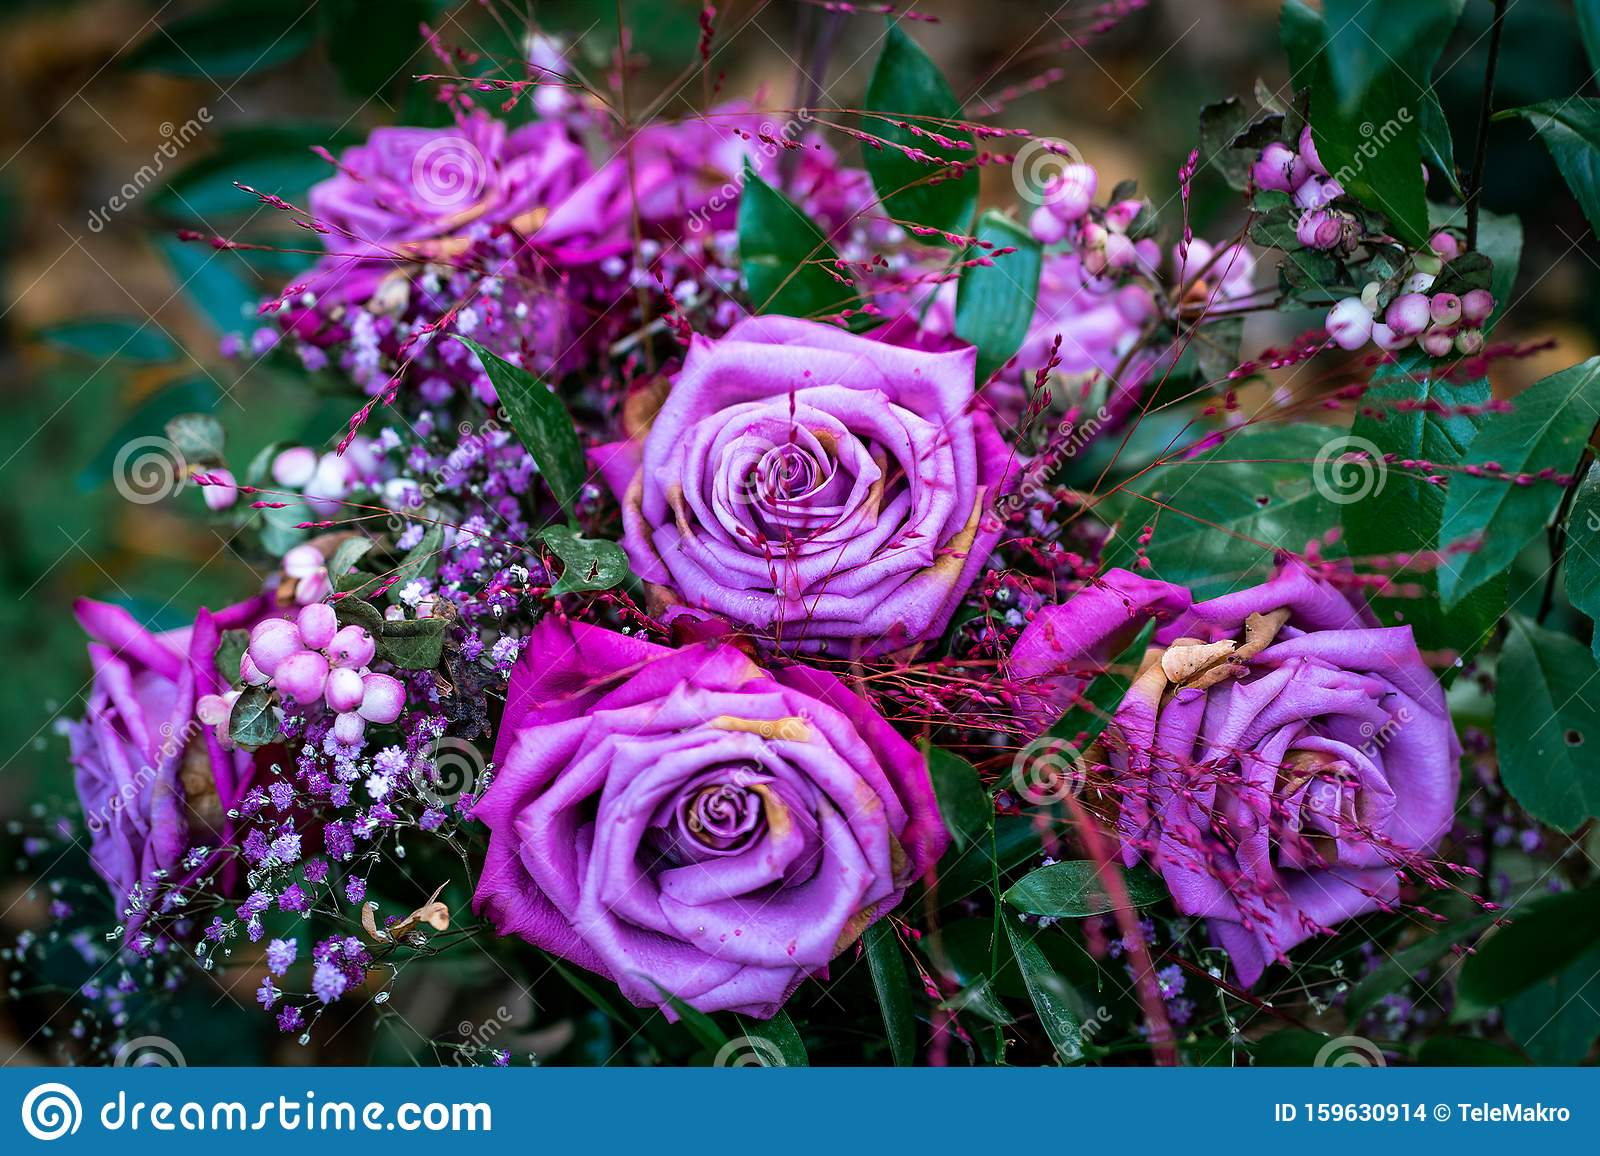 Beautiful Flower Bouquet Made Of Blue And Purple Roses Stock Photo Image Of Detailed Colourful 159630914